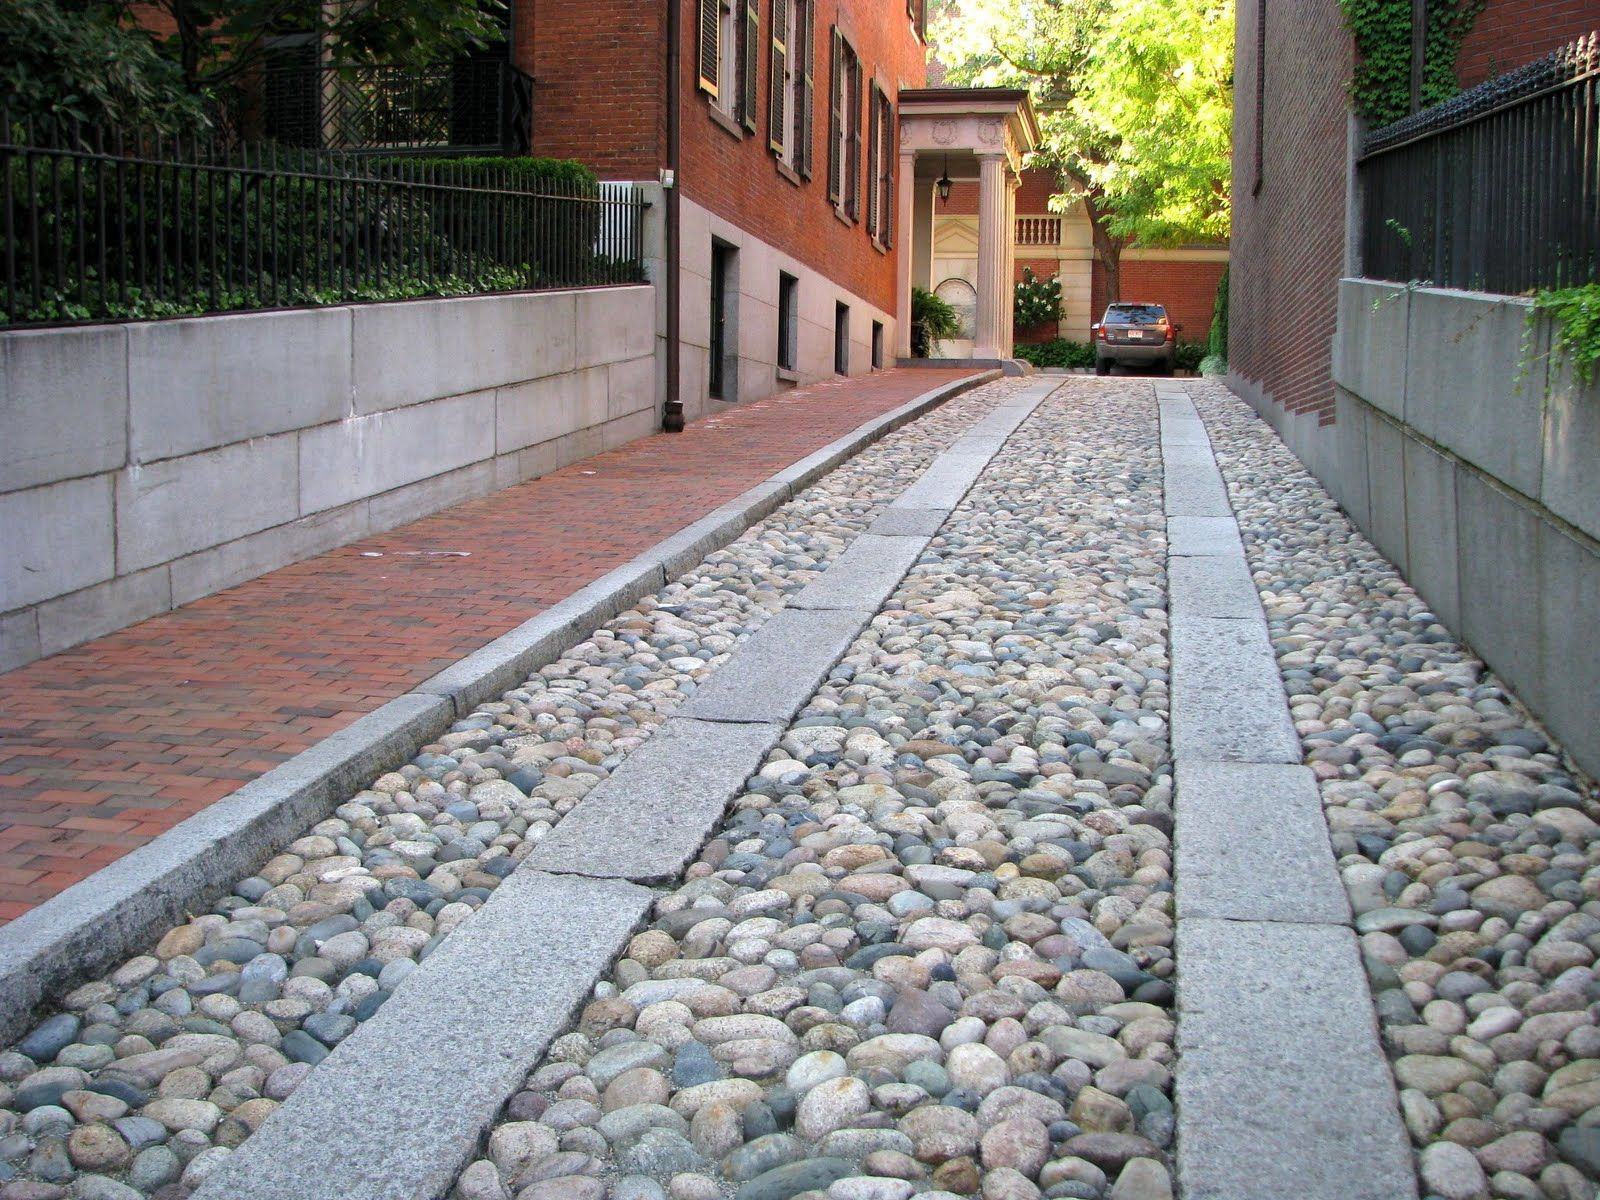 Granite pavers define the path in this river rock cobblestone granite pavers define the path in this river rock cobblestone driveway on mount vernon street solutioingenieria Choice Image